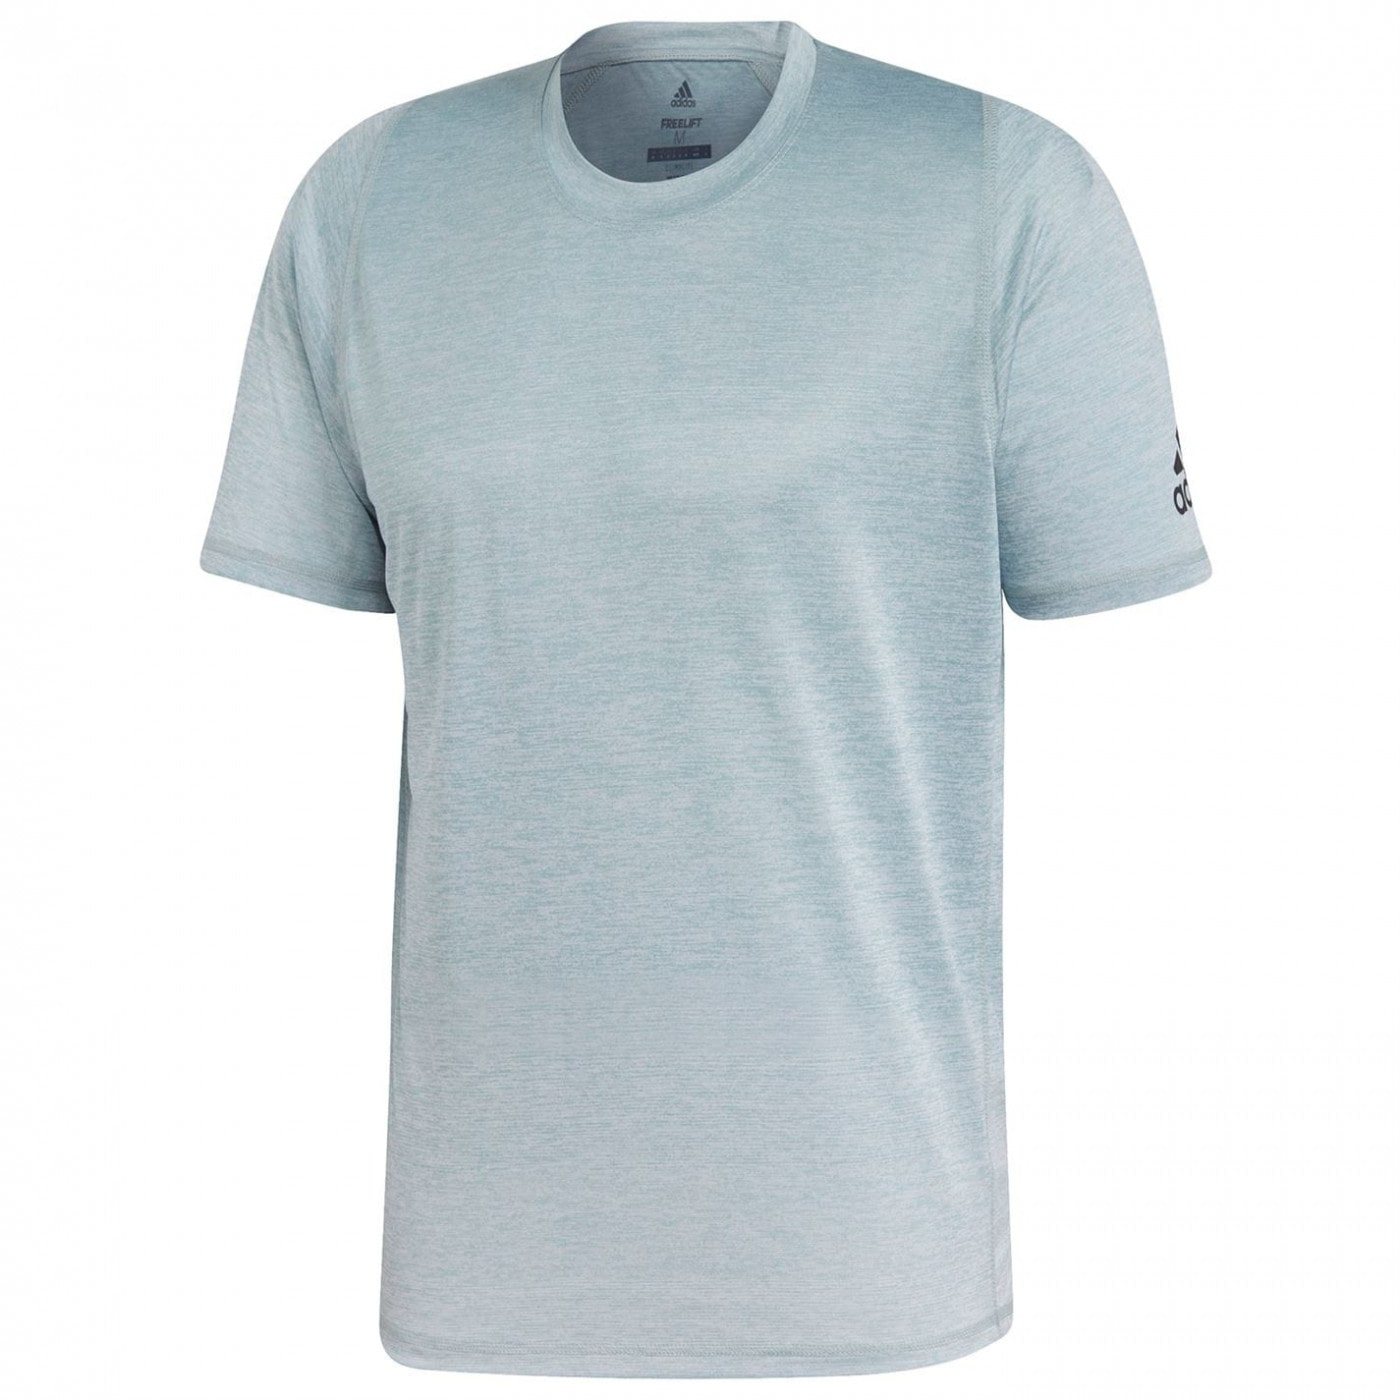 Adidas FreeLift 360 Gradient Men's Graphic Tee